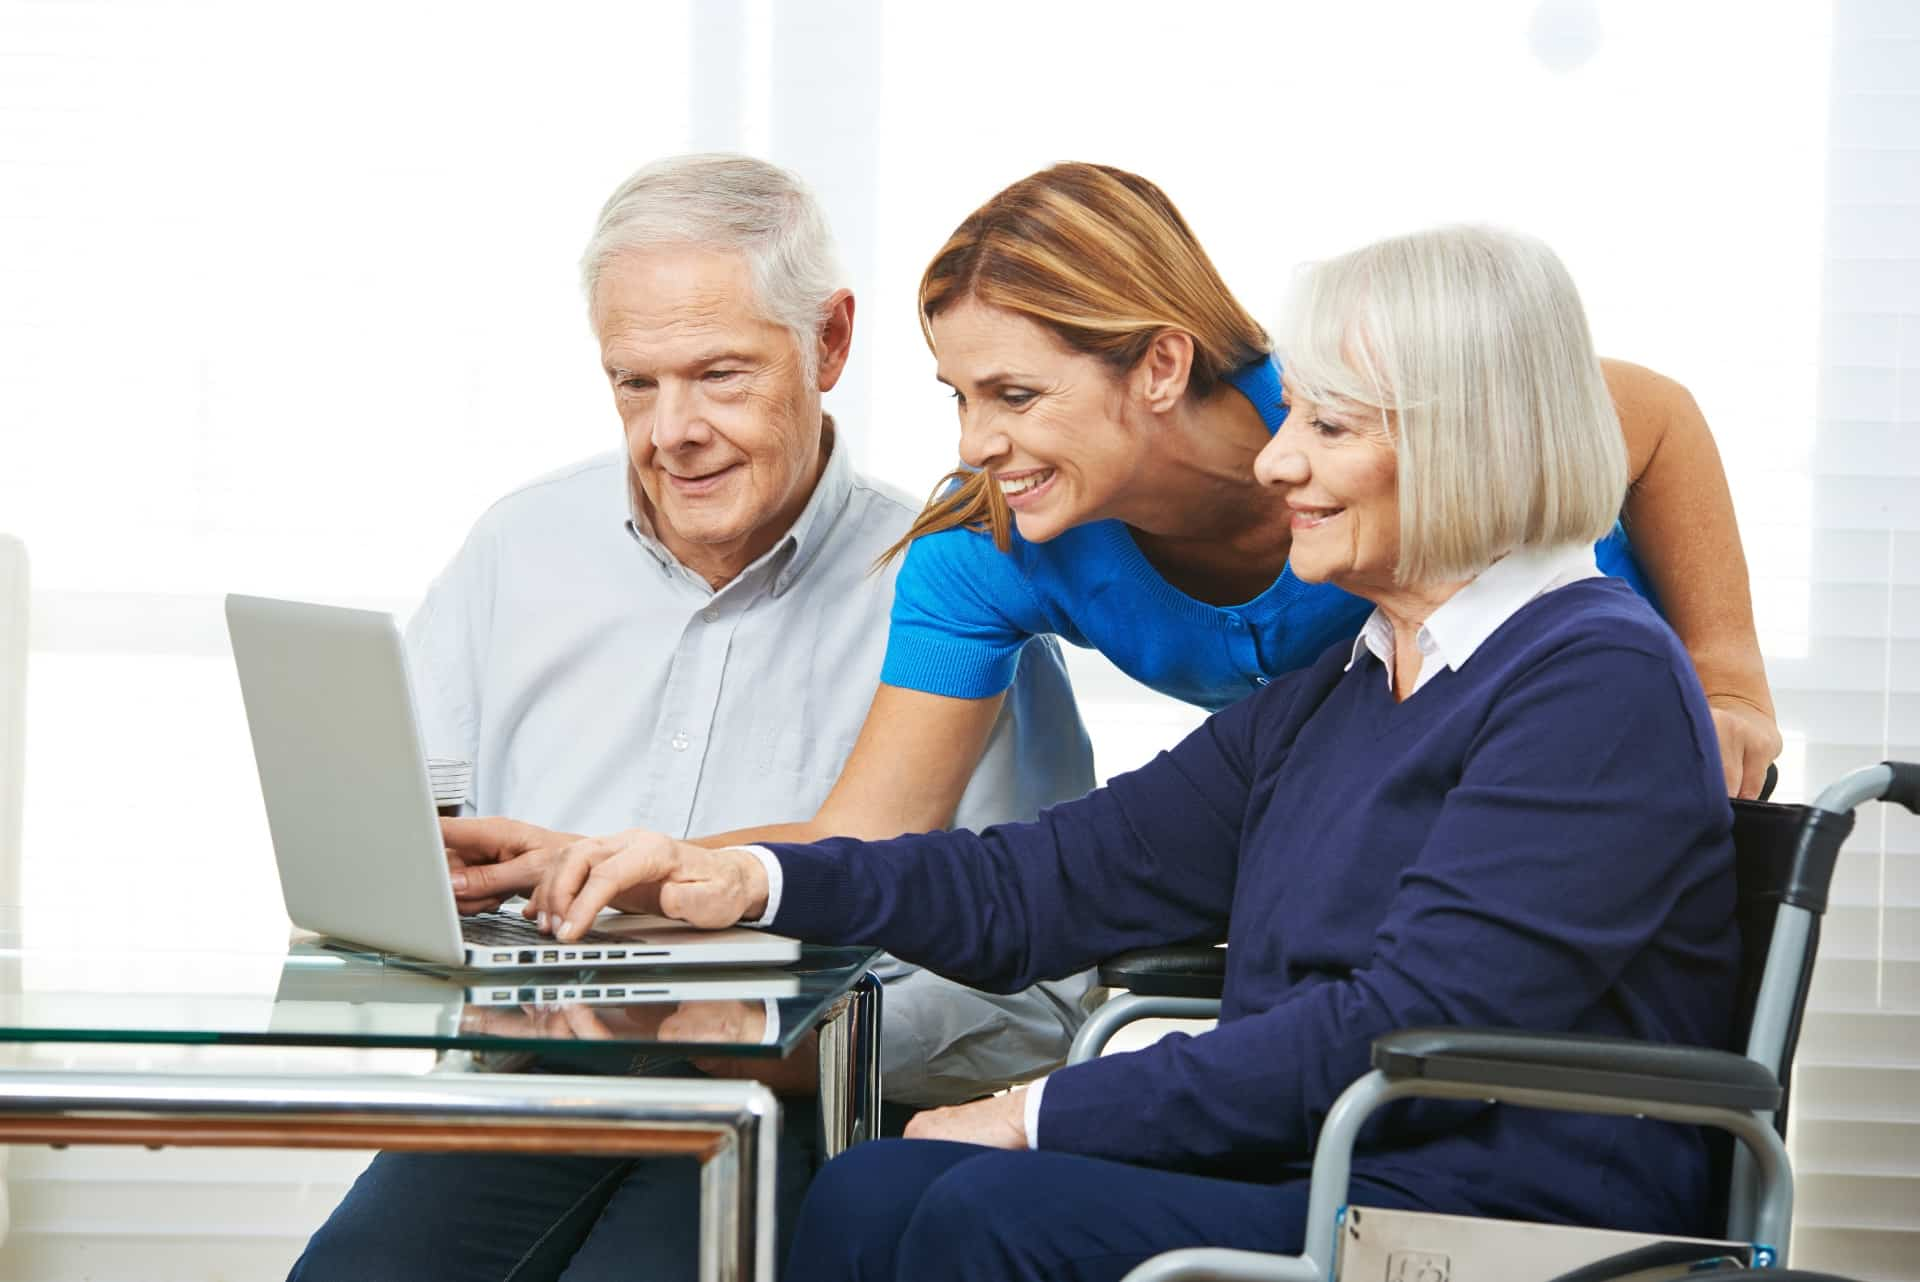 When caregiving includes computer assistance